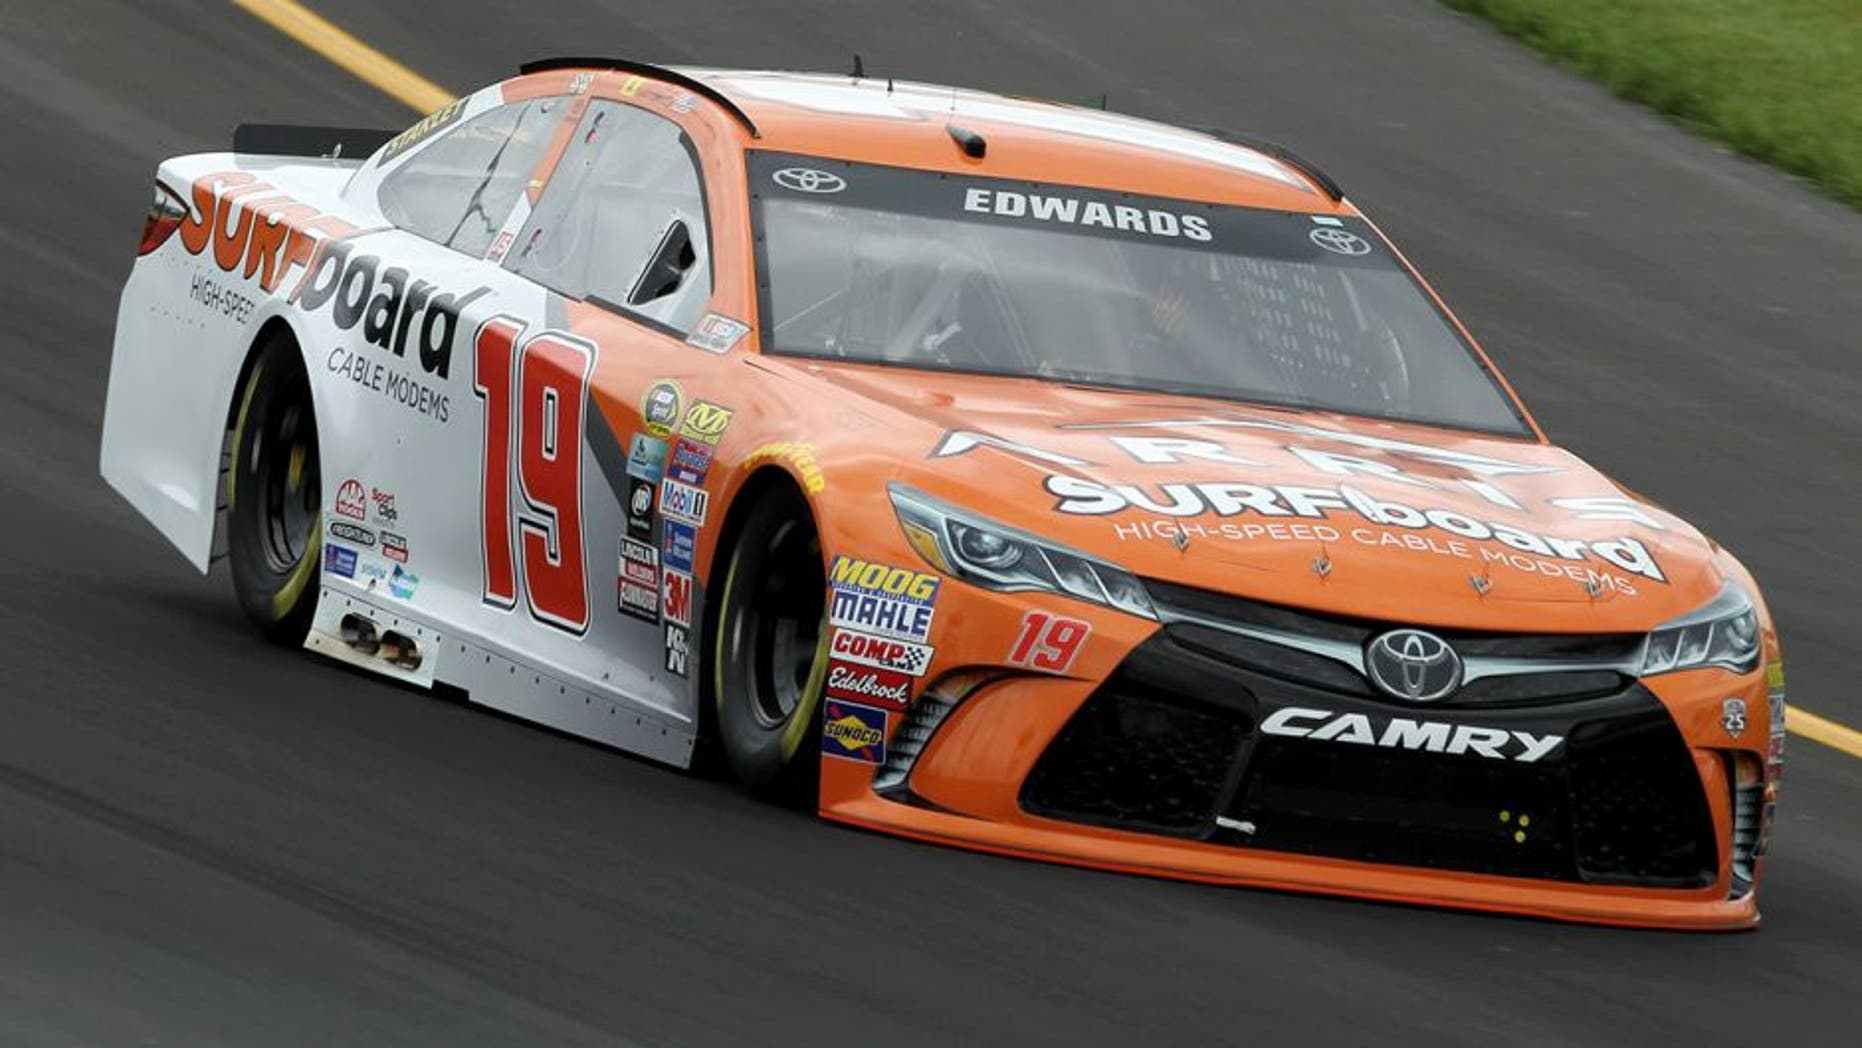 SPARTA, KY - JULY 07: Carl Edwards, driver of the #19 ARRIS Surfboard Toyota, practices for the NASCAR Sprint Cup Series Quaker State 400 at Kentucky Speedway on July 7, 2016 in Sparta, Kentucky. (Photo by Dylan Buell/Getty Images)